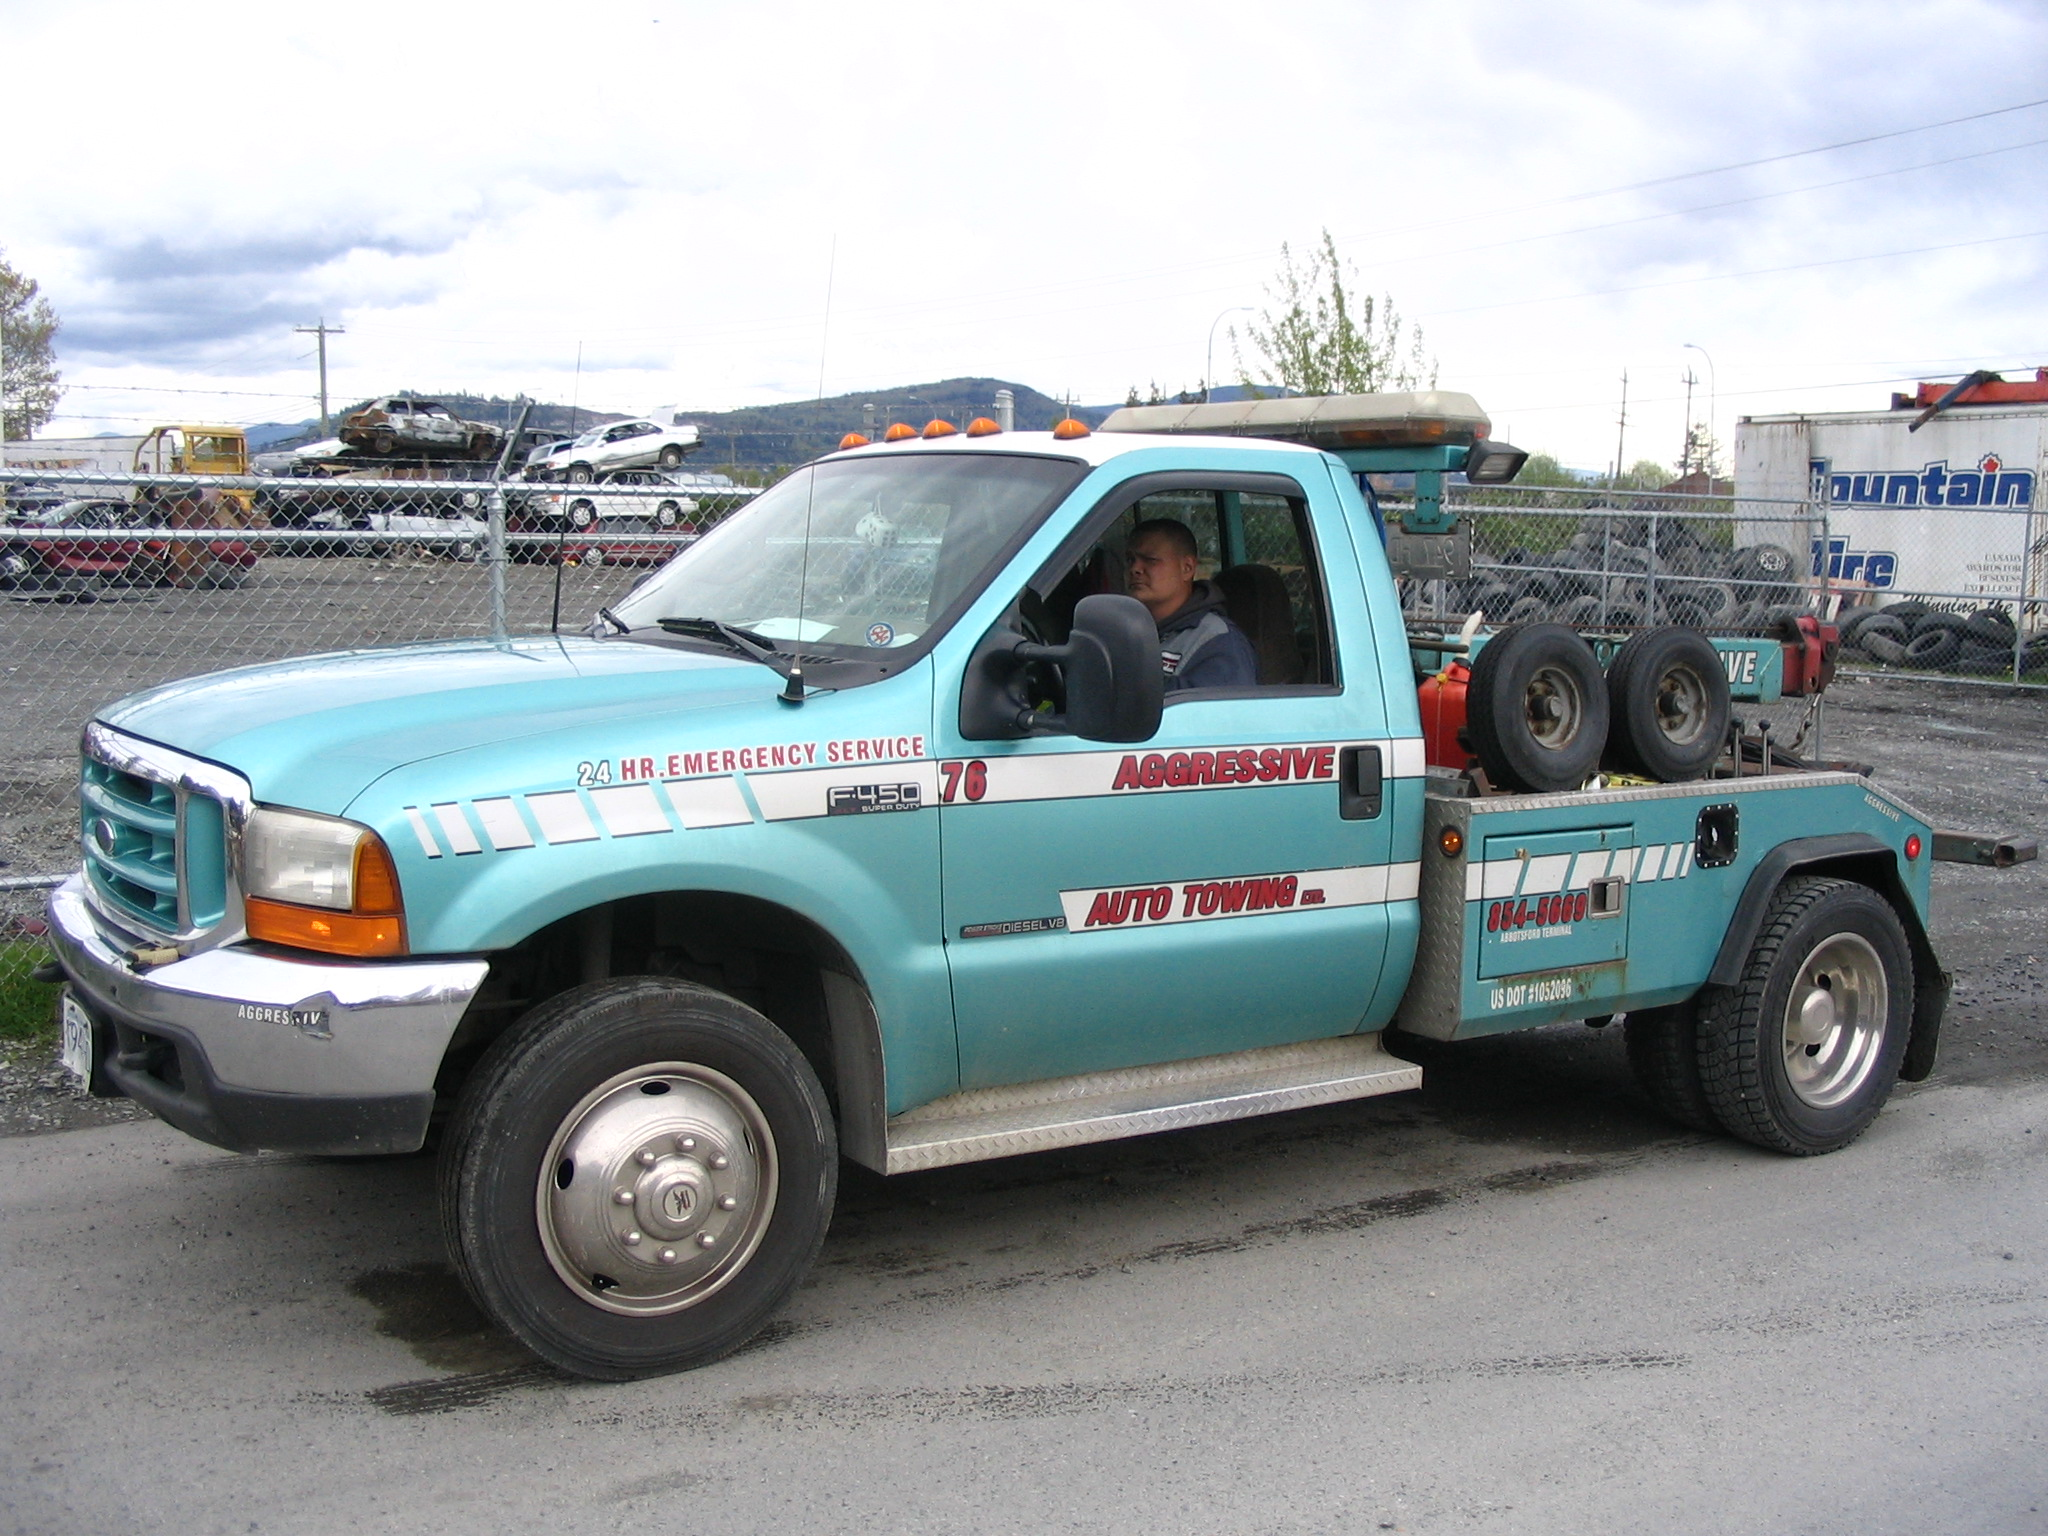 F550 Towing Capacity >> Aggressive Auto Towing Ltd. - Abbotsfords Source for Towing